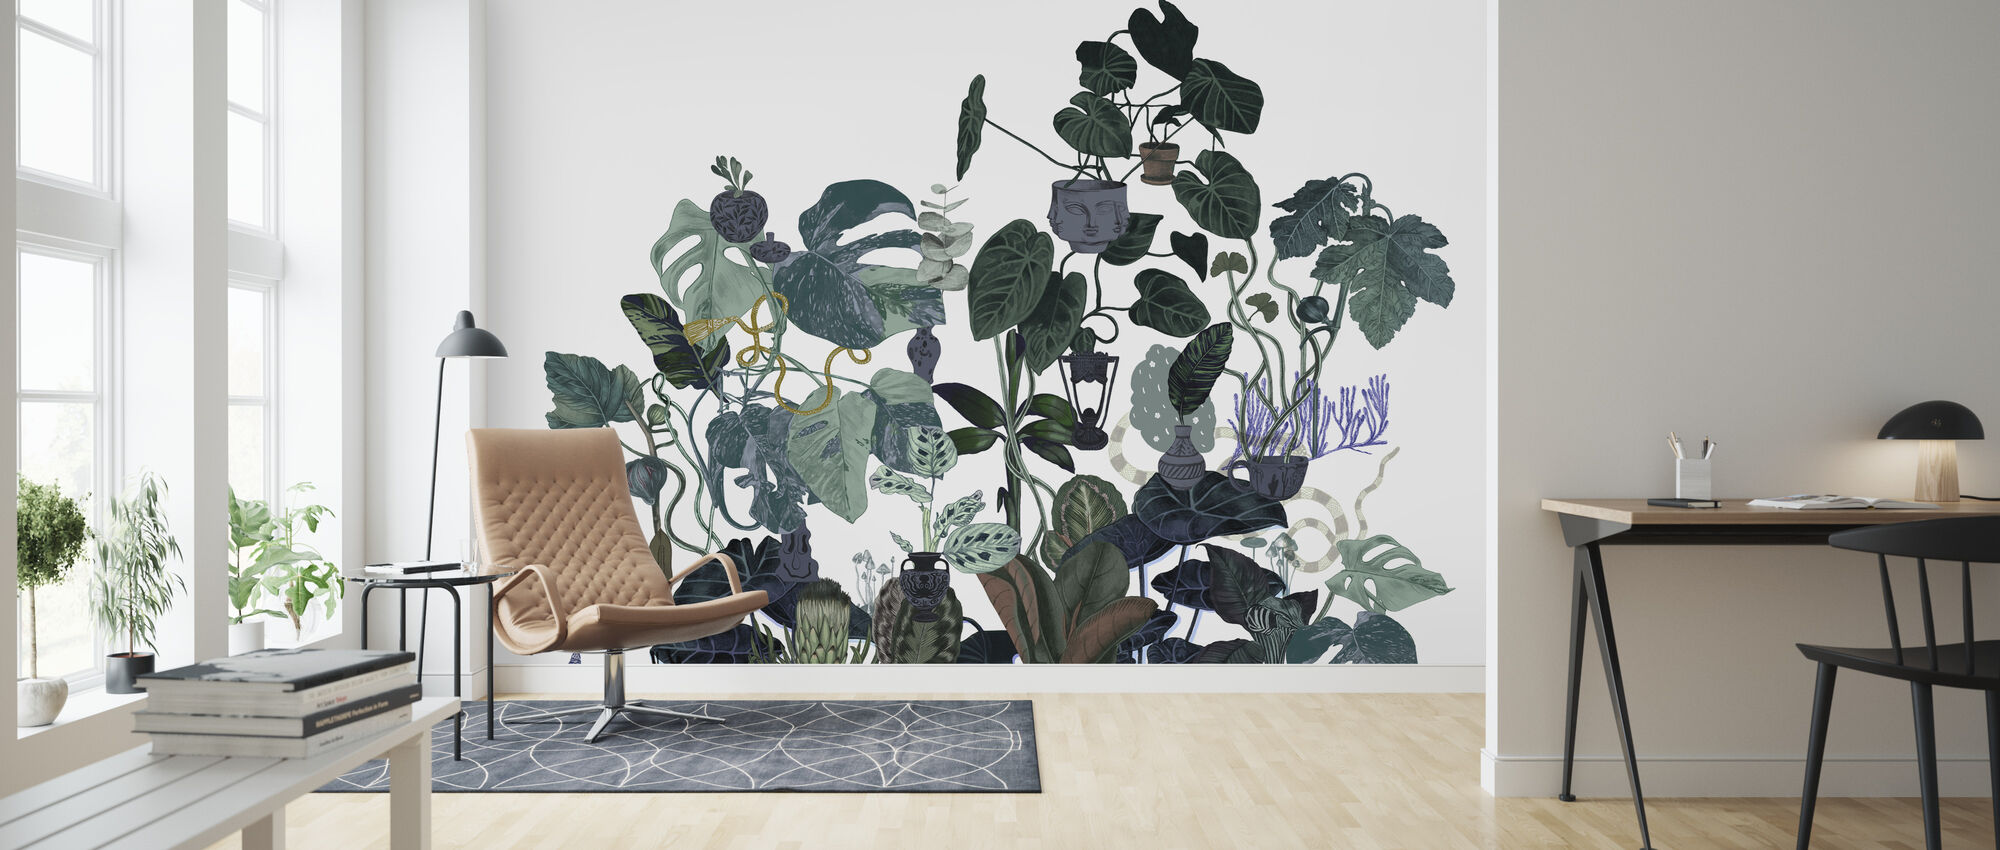 Tangled Tree II - Wallpaper - Living Room